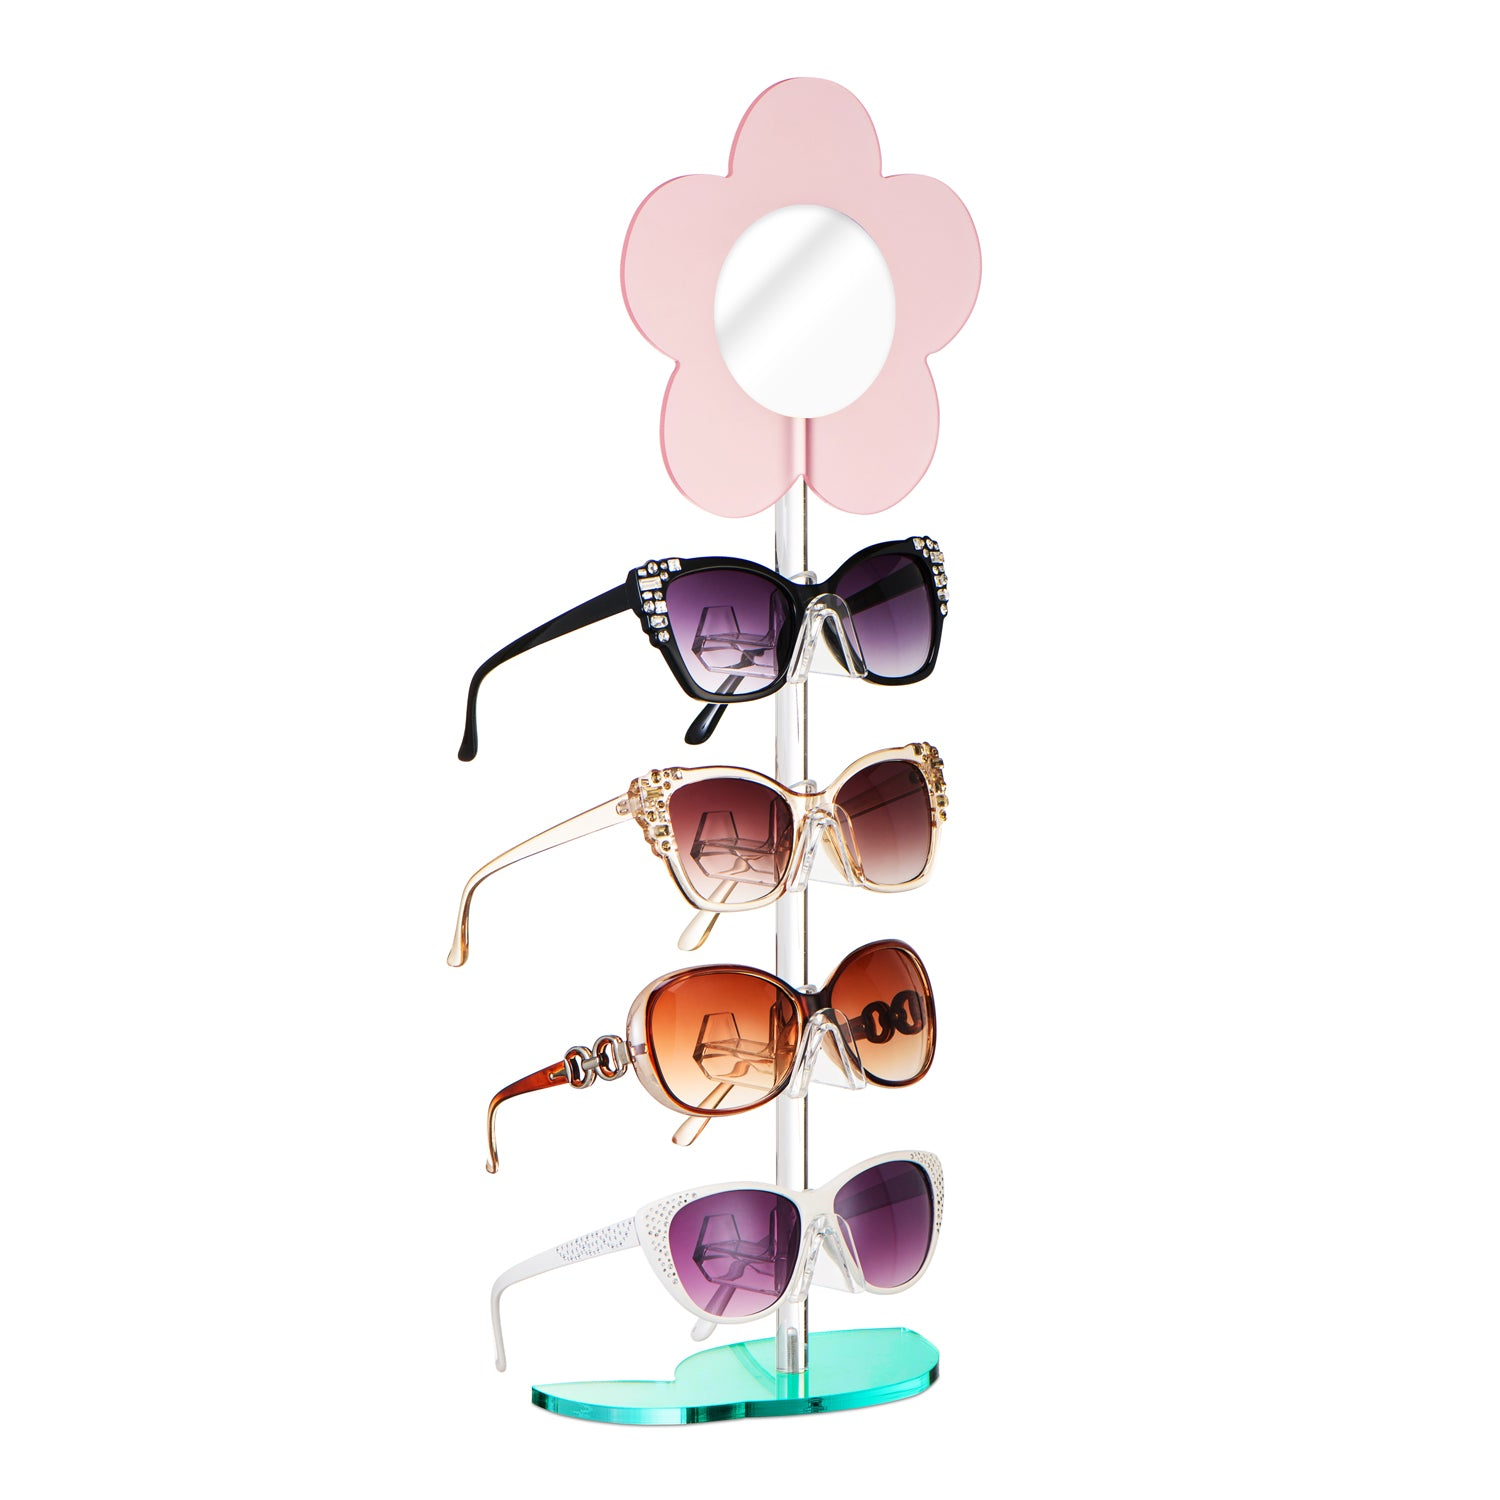 #DP065-PK Colored Acrylic Sunglasses Frame Stand Sunglasses Holder Stand